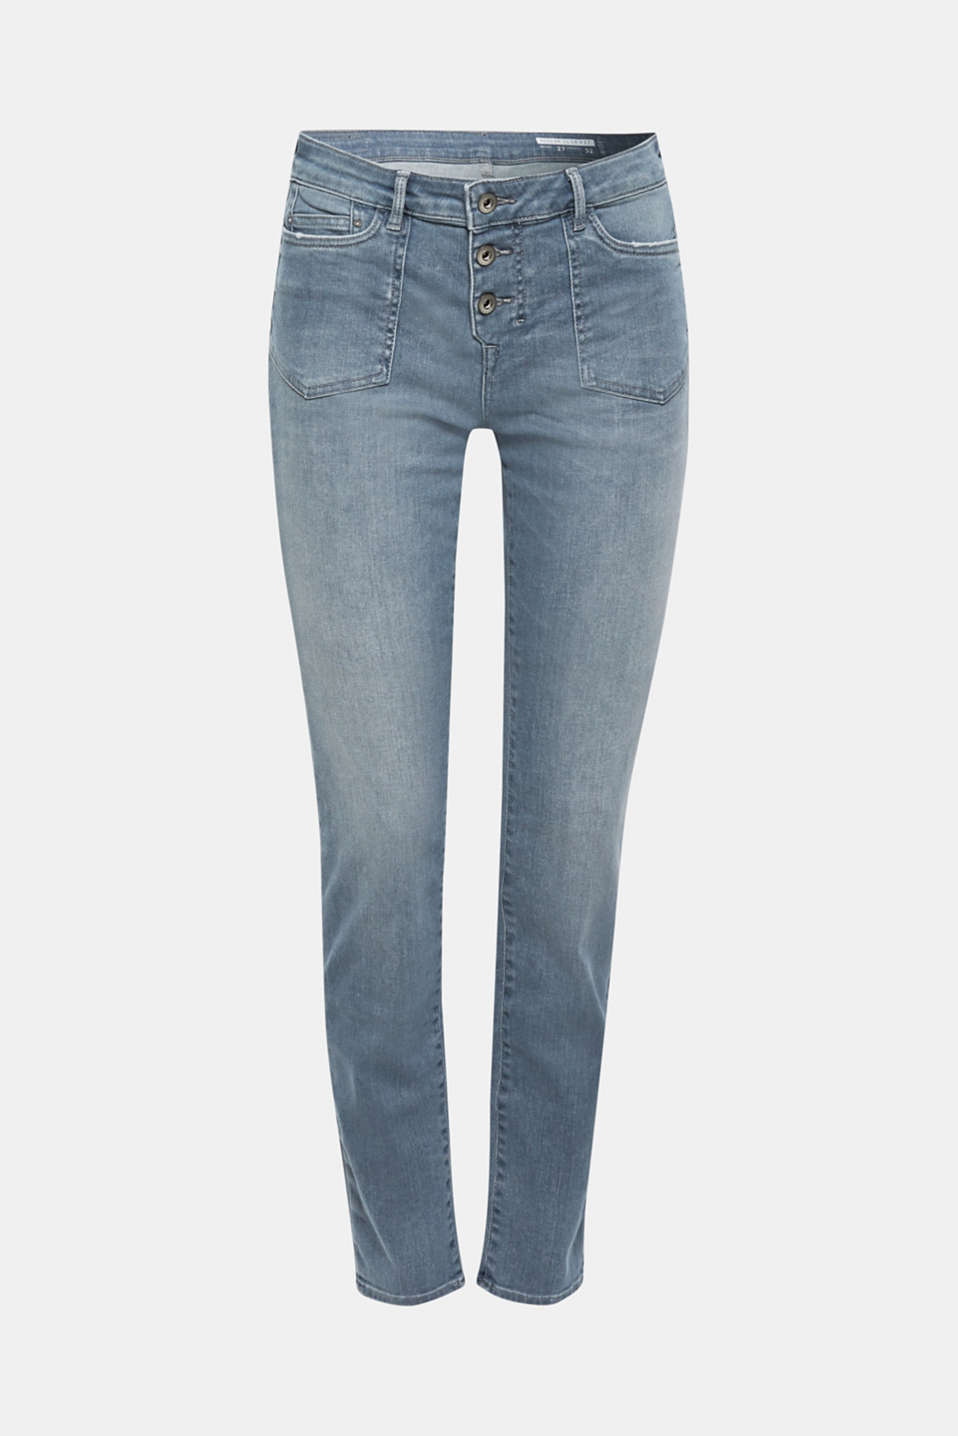 Jeans with a button placket and patch pockets, GREY MEDIUM WASH, detail image number 6